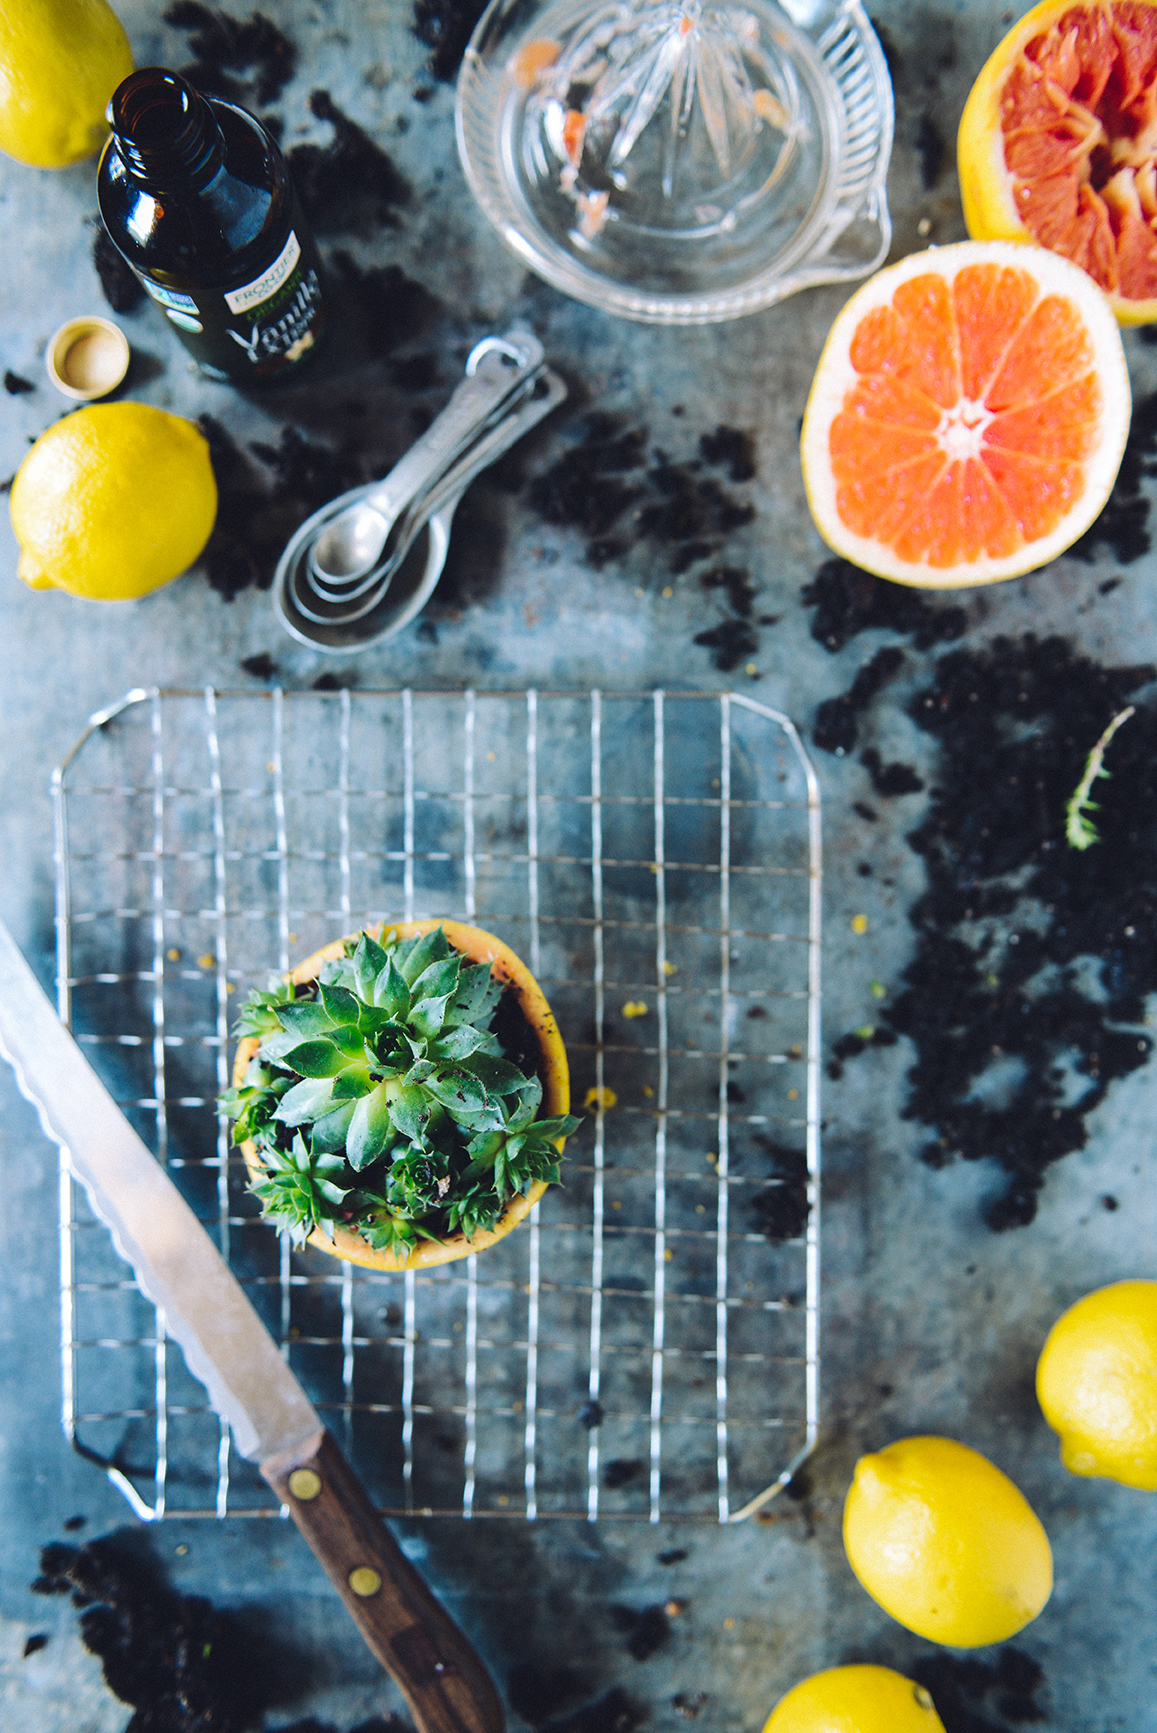 Desert Inspired Lemon, Ginger & Turmeric Cornmeal Layer Cake with Grapefruit Frosting & A Living Succulent // www.WithTheGrains.com